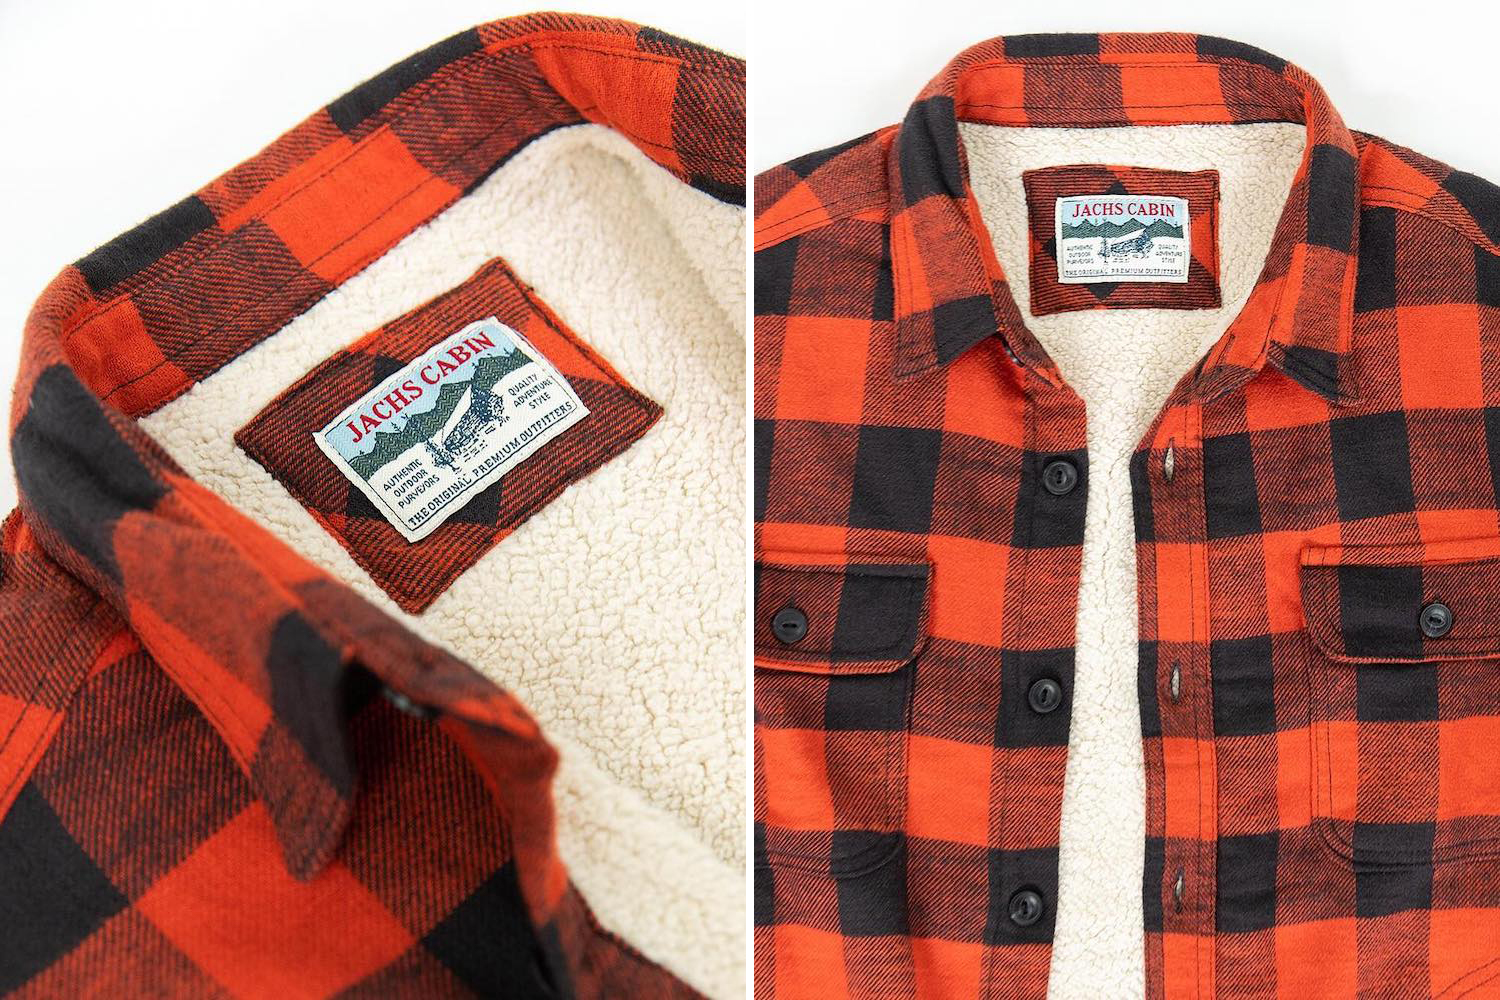 902aa374d6b Best Deal at Jachs NY's Labor Day Sale? This Fall Flannel. - InsideHook